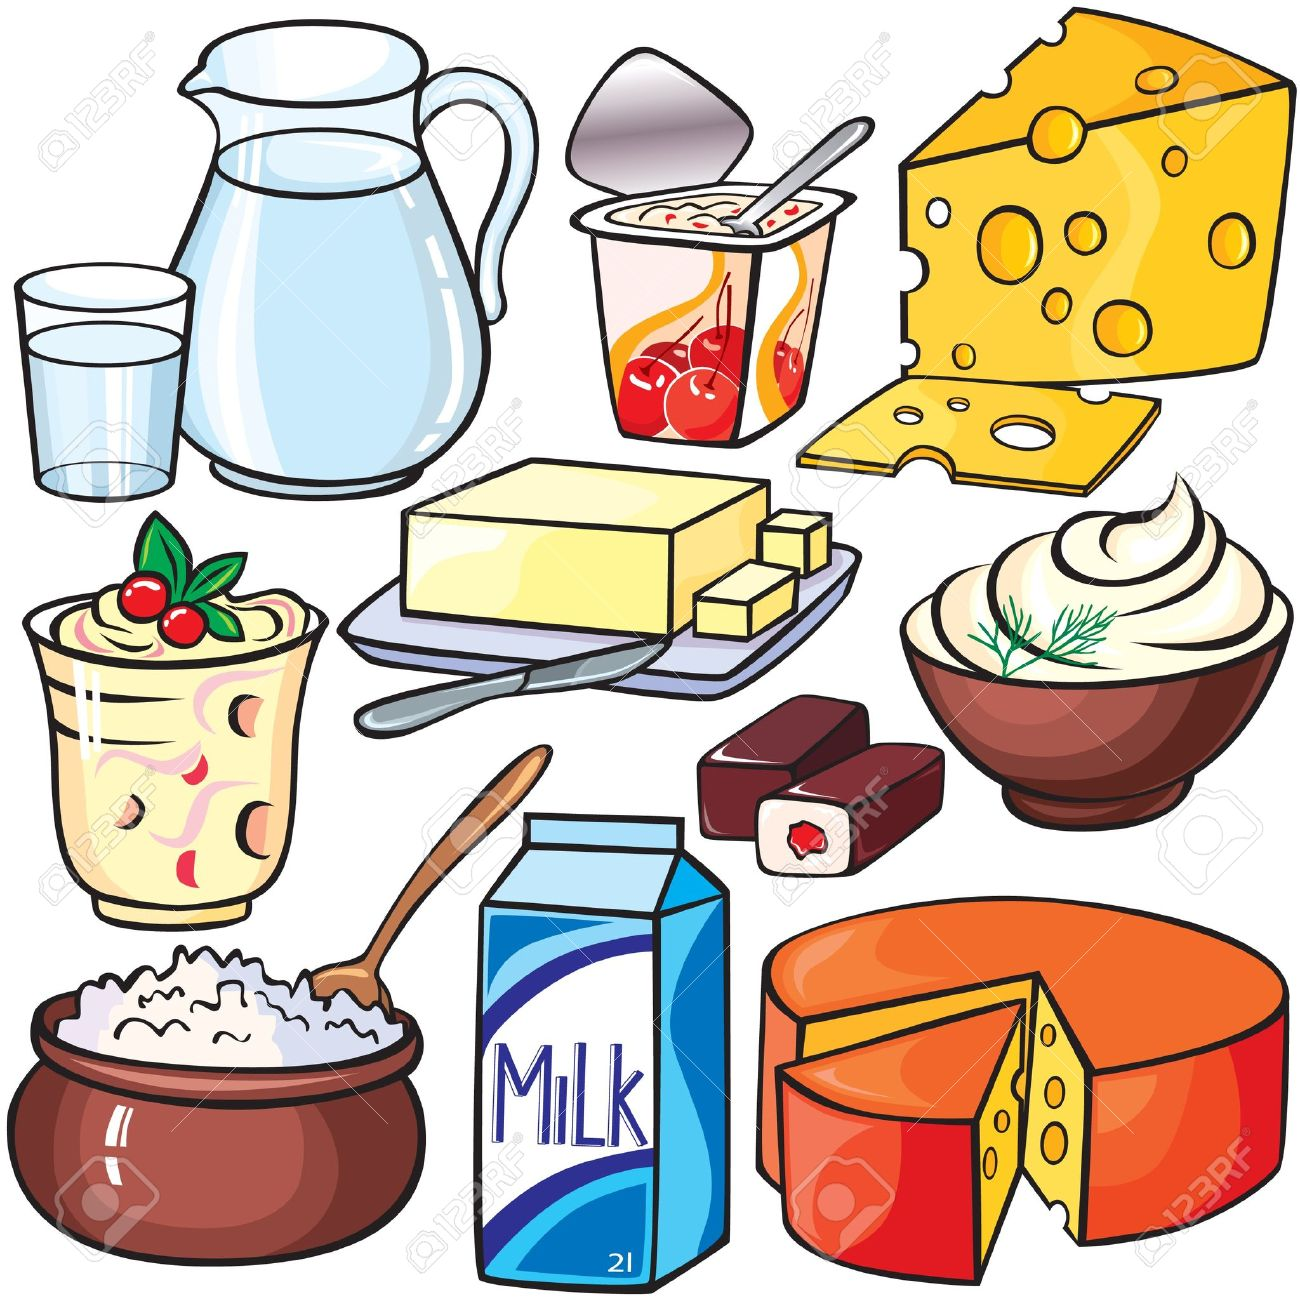 hight resolution of dairy clipart 32956 dfiles dairy clip art